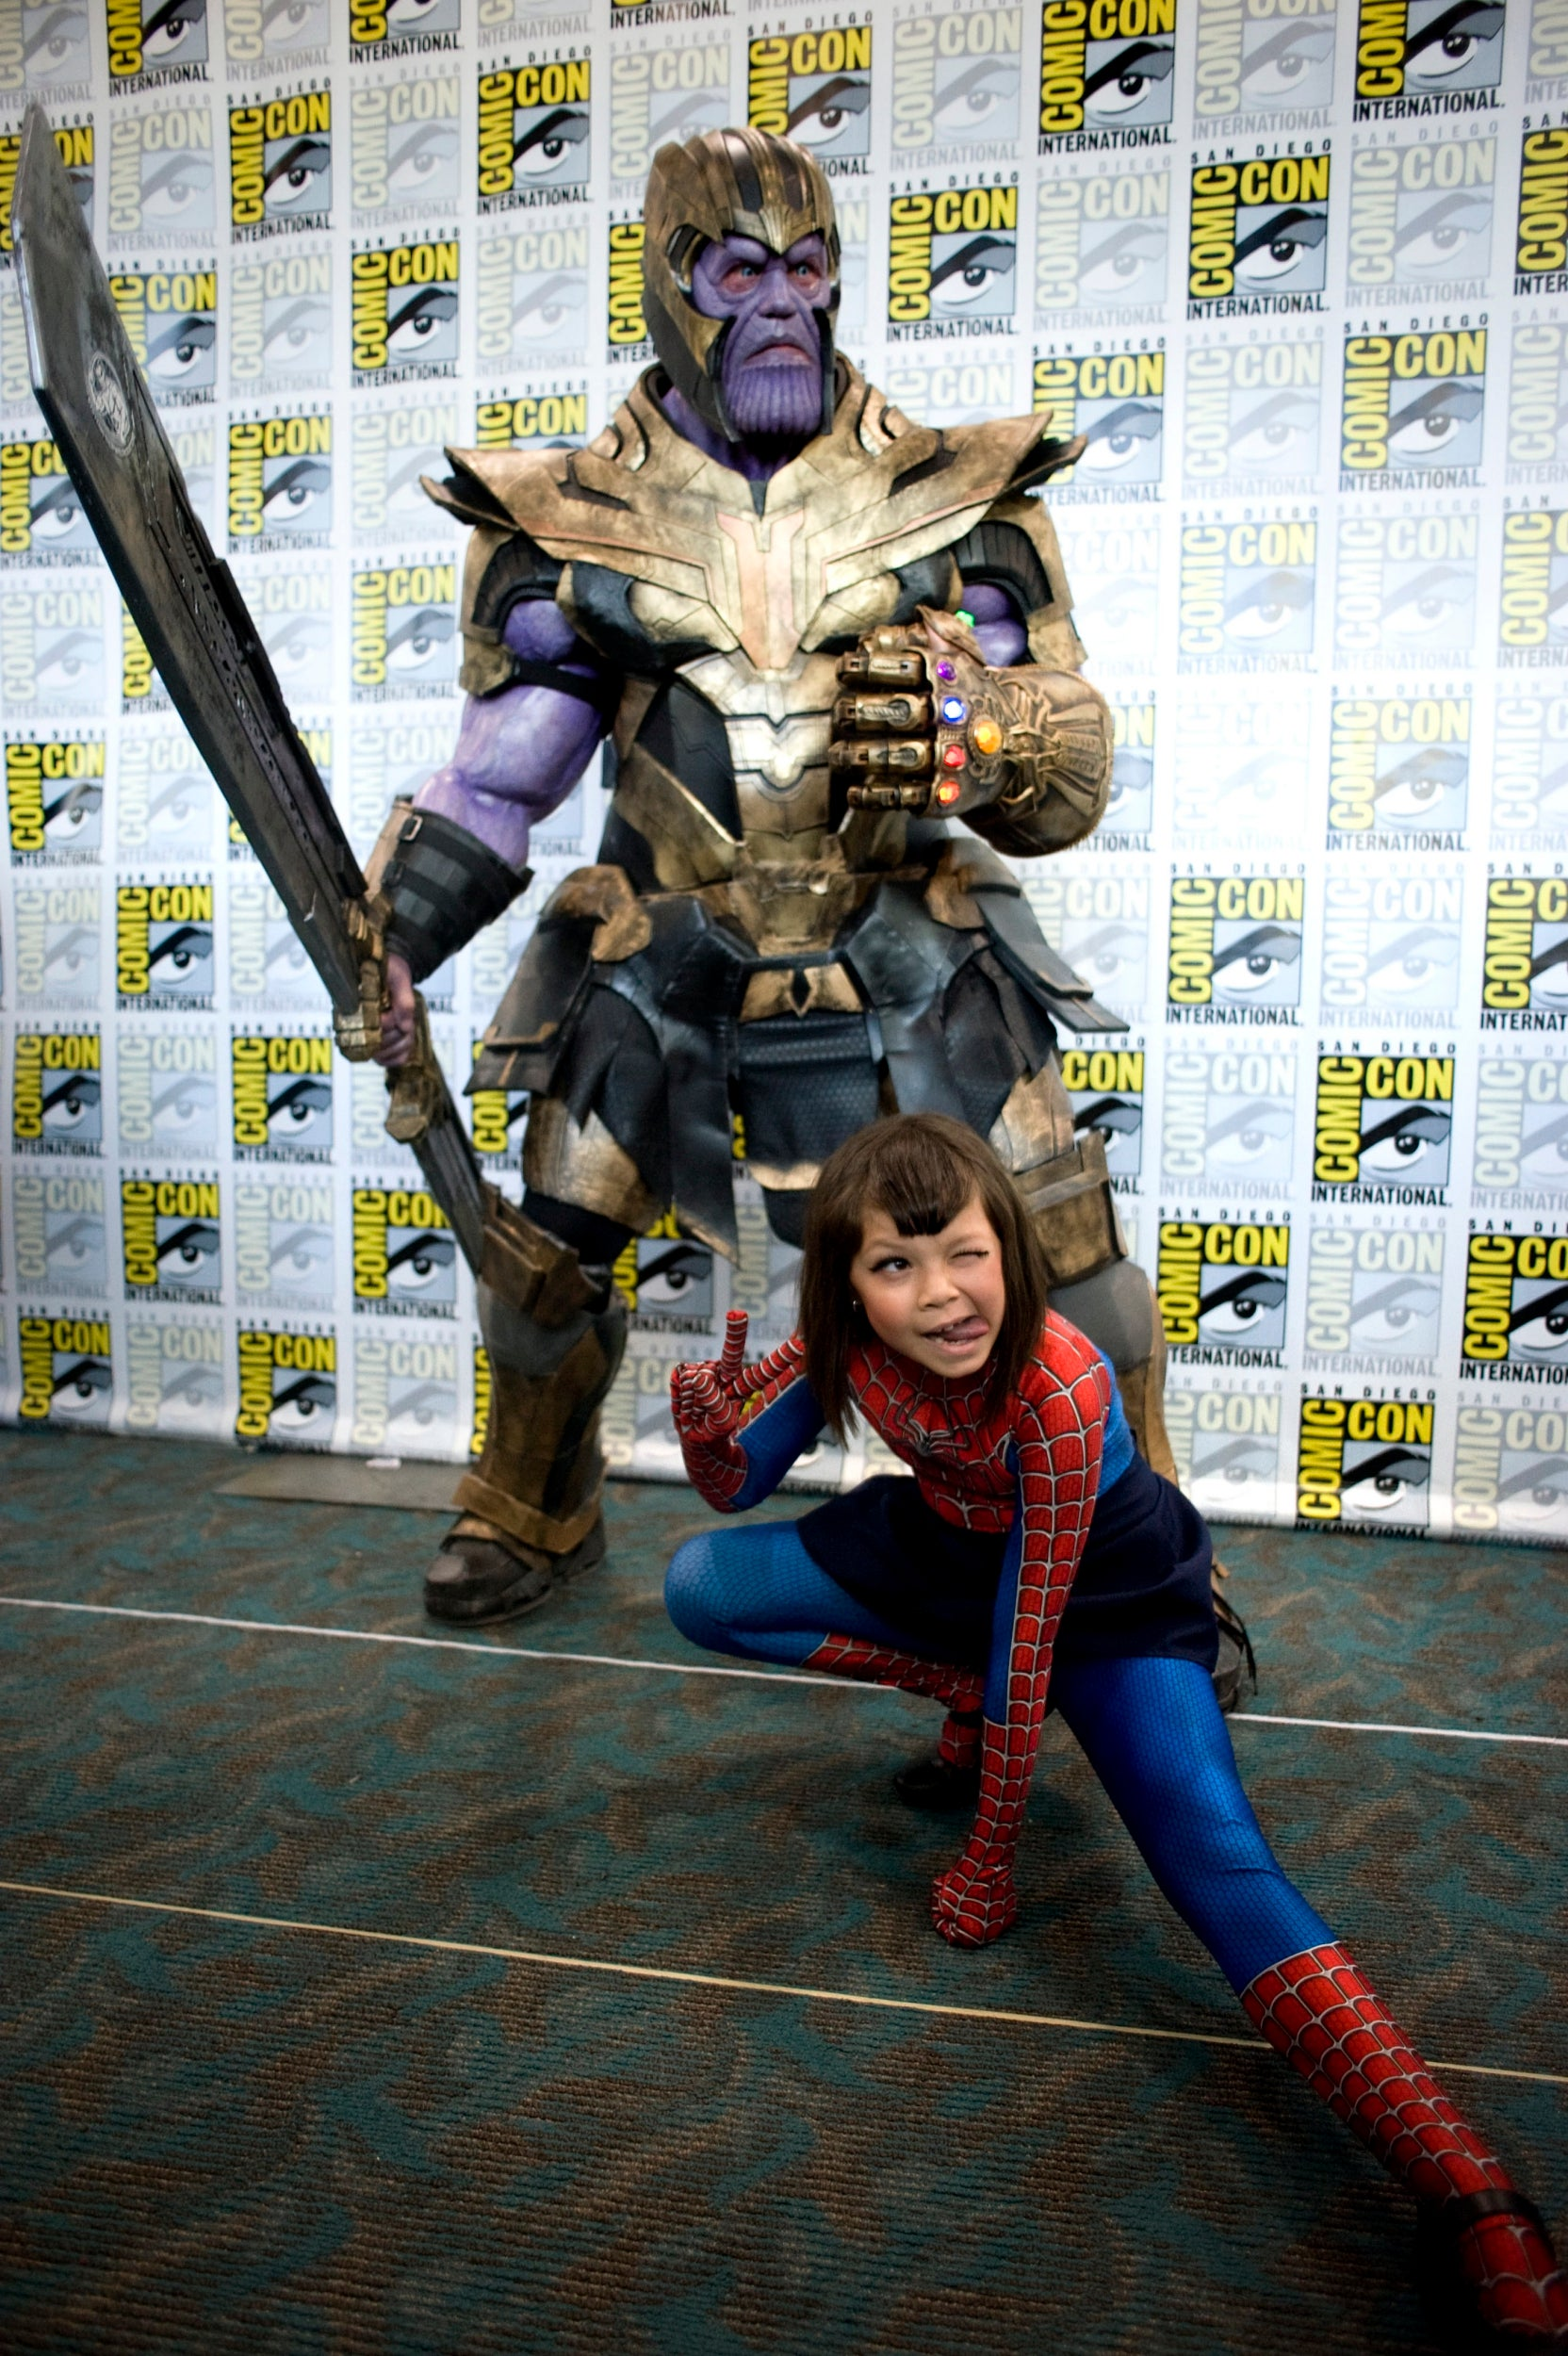 Hot young comic con